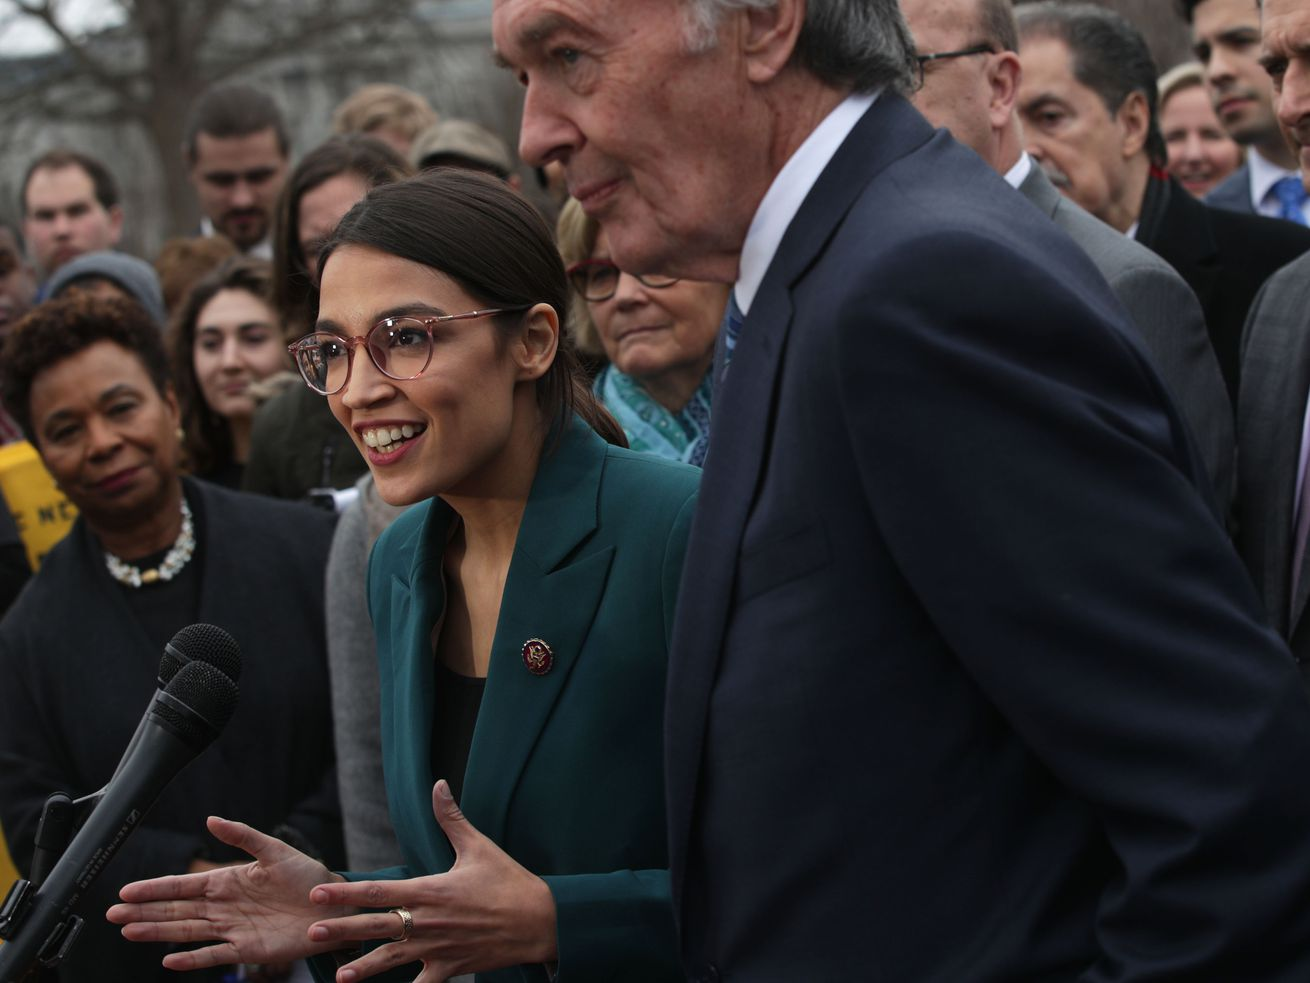 Rep. Alexandria Ocasio-Cortez (D-NY) speaks as Sen. Ed Markey (D-MA) and other congressional Democrats listen during a news conference in front of the US Capitol on February 7, 2019, in Washington, DC.